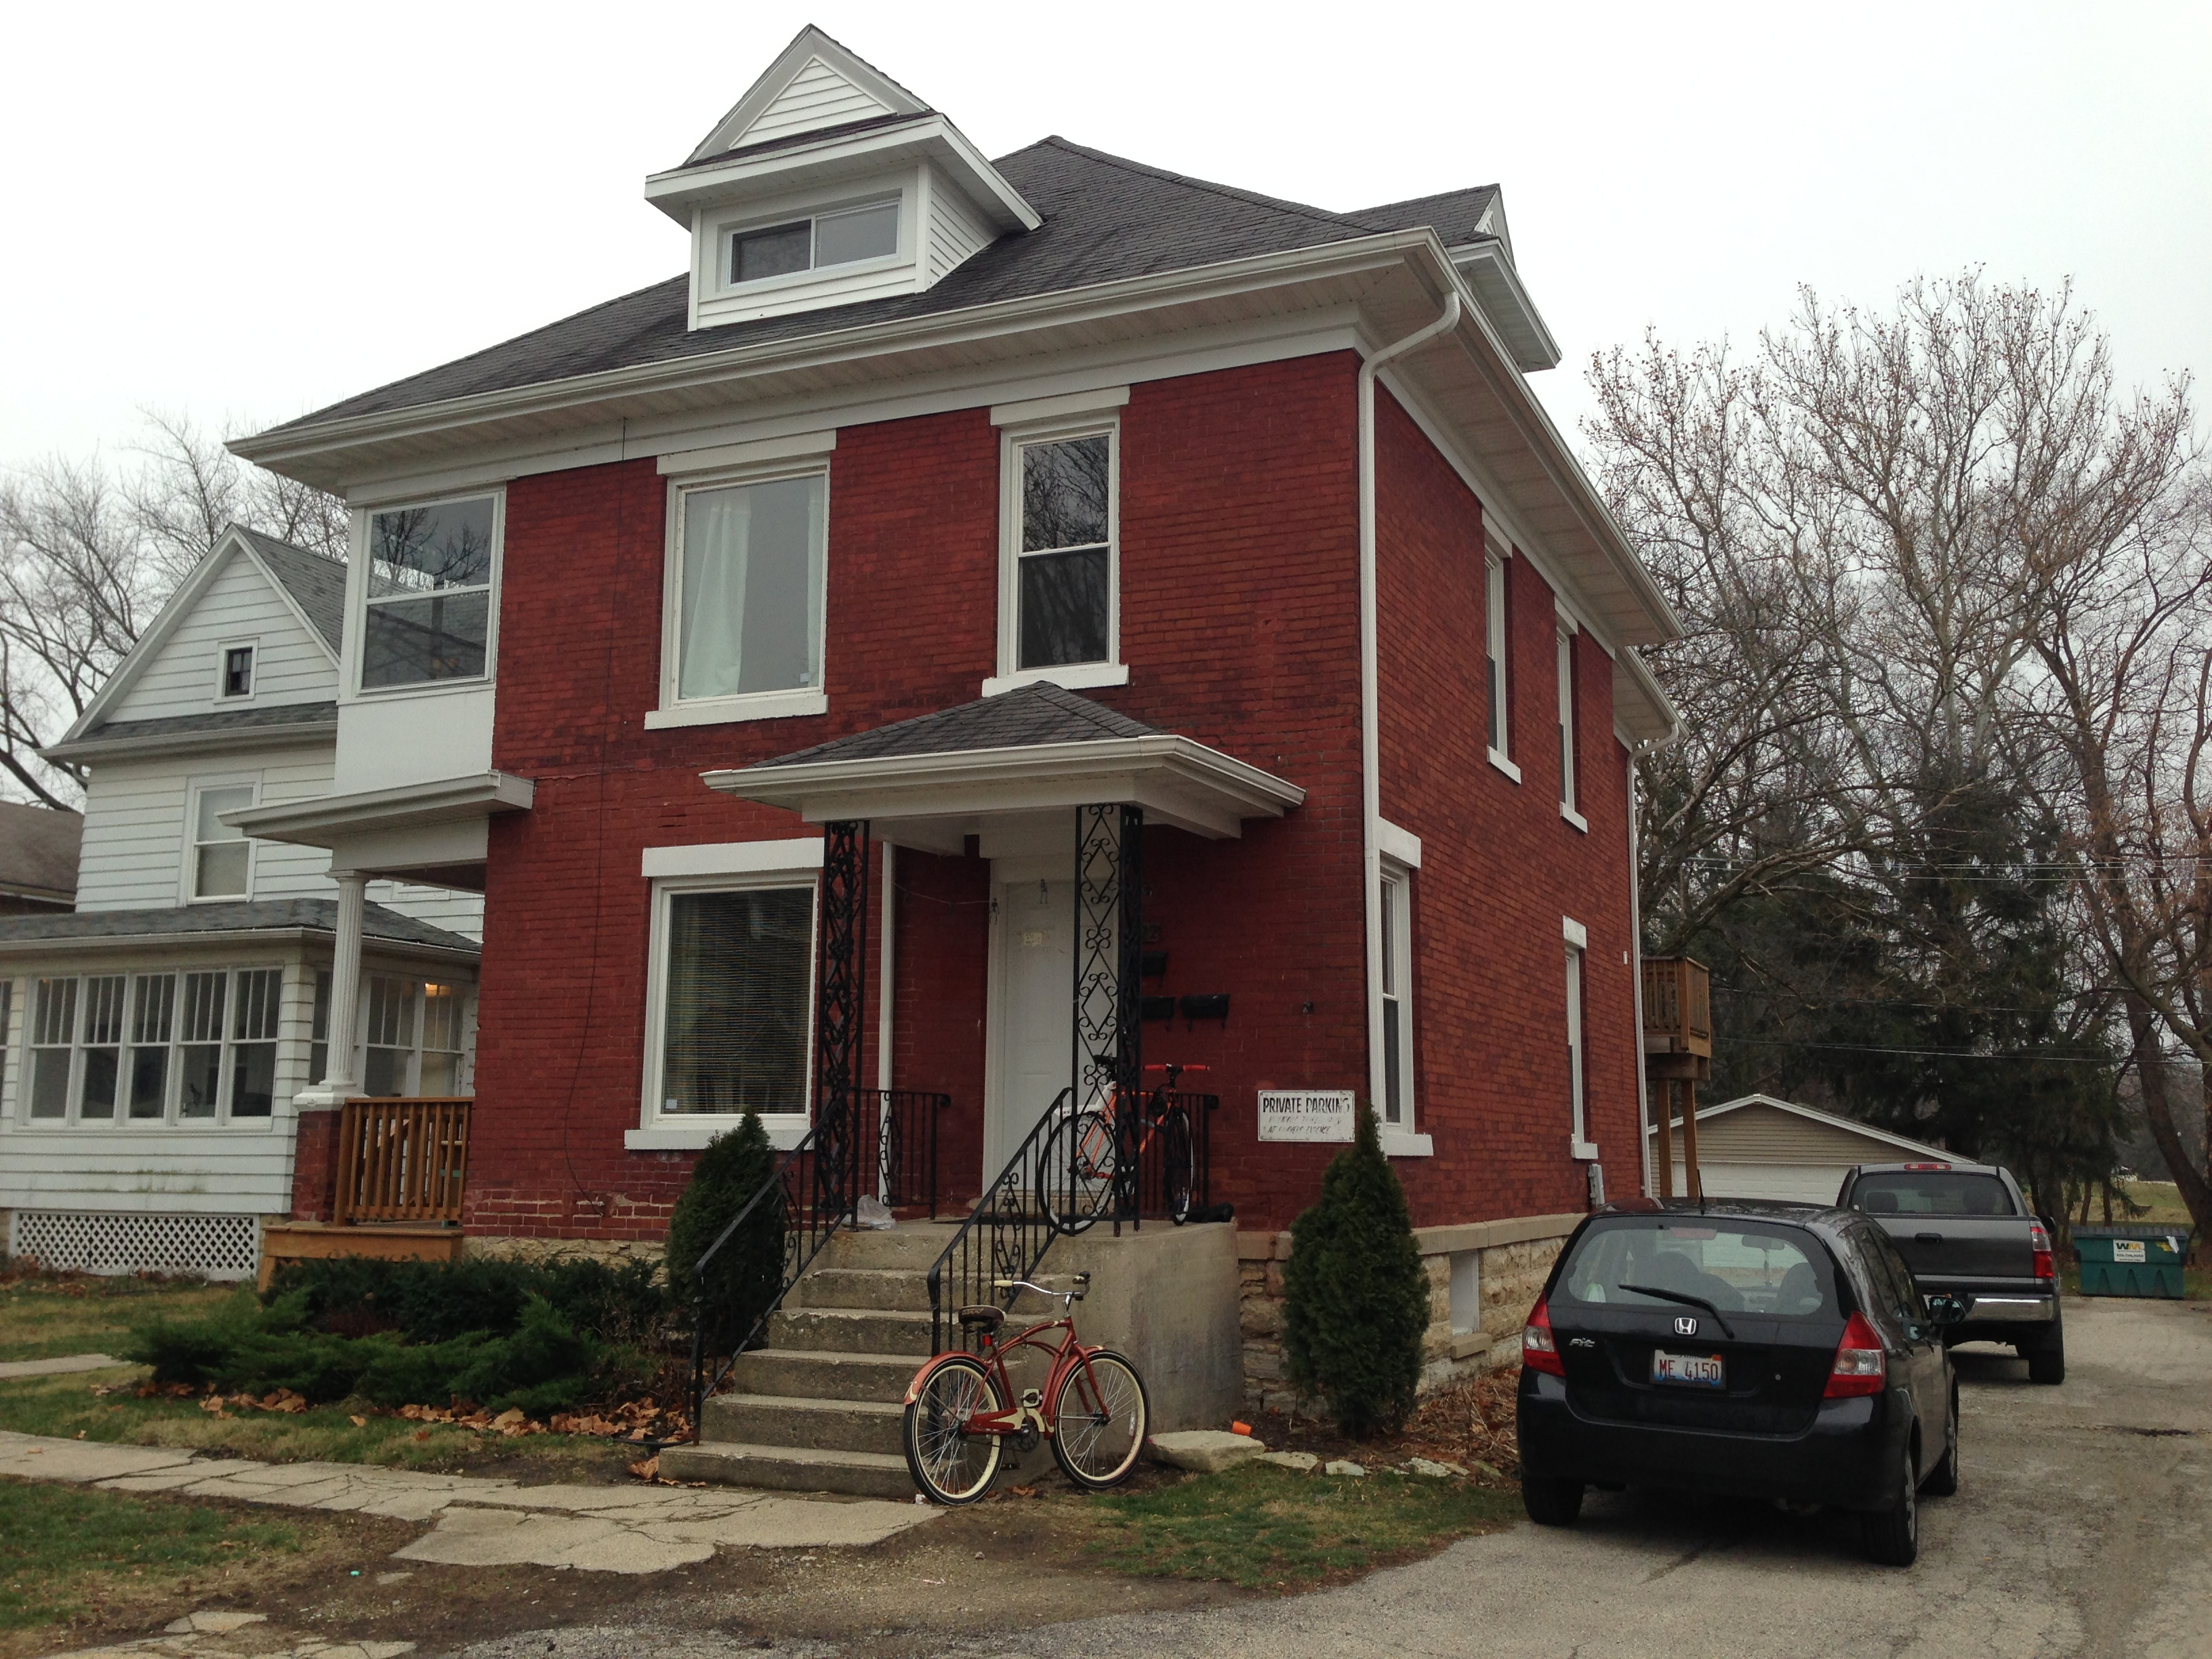 522 College Ave, 2 min walk to campus